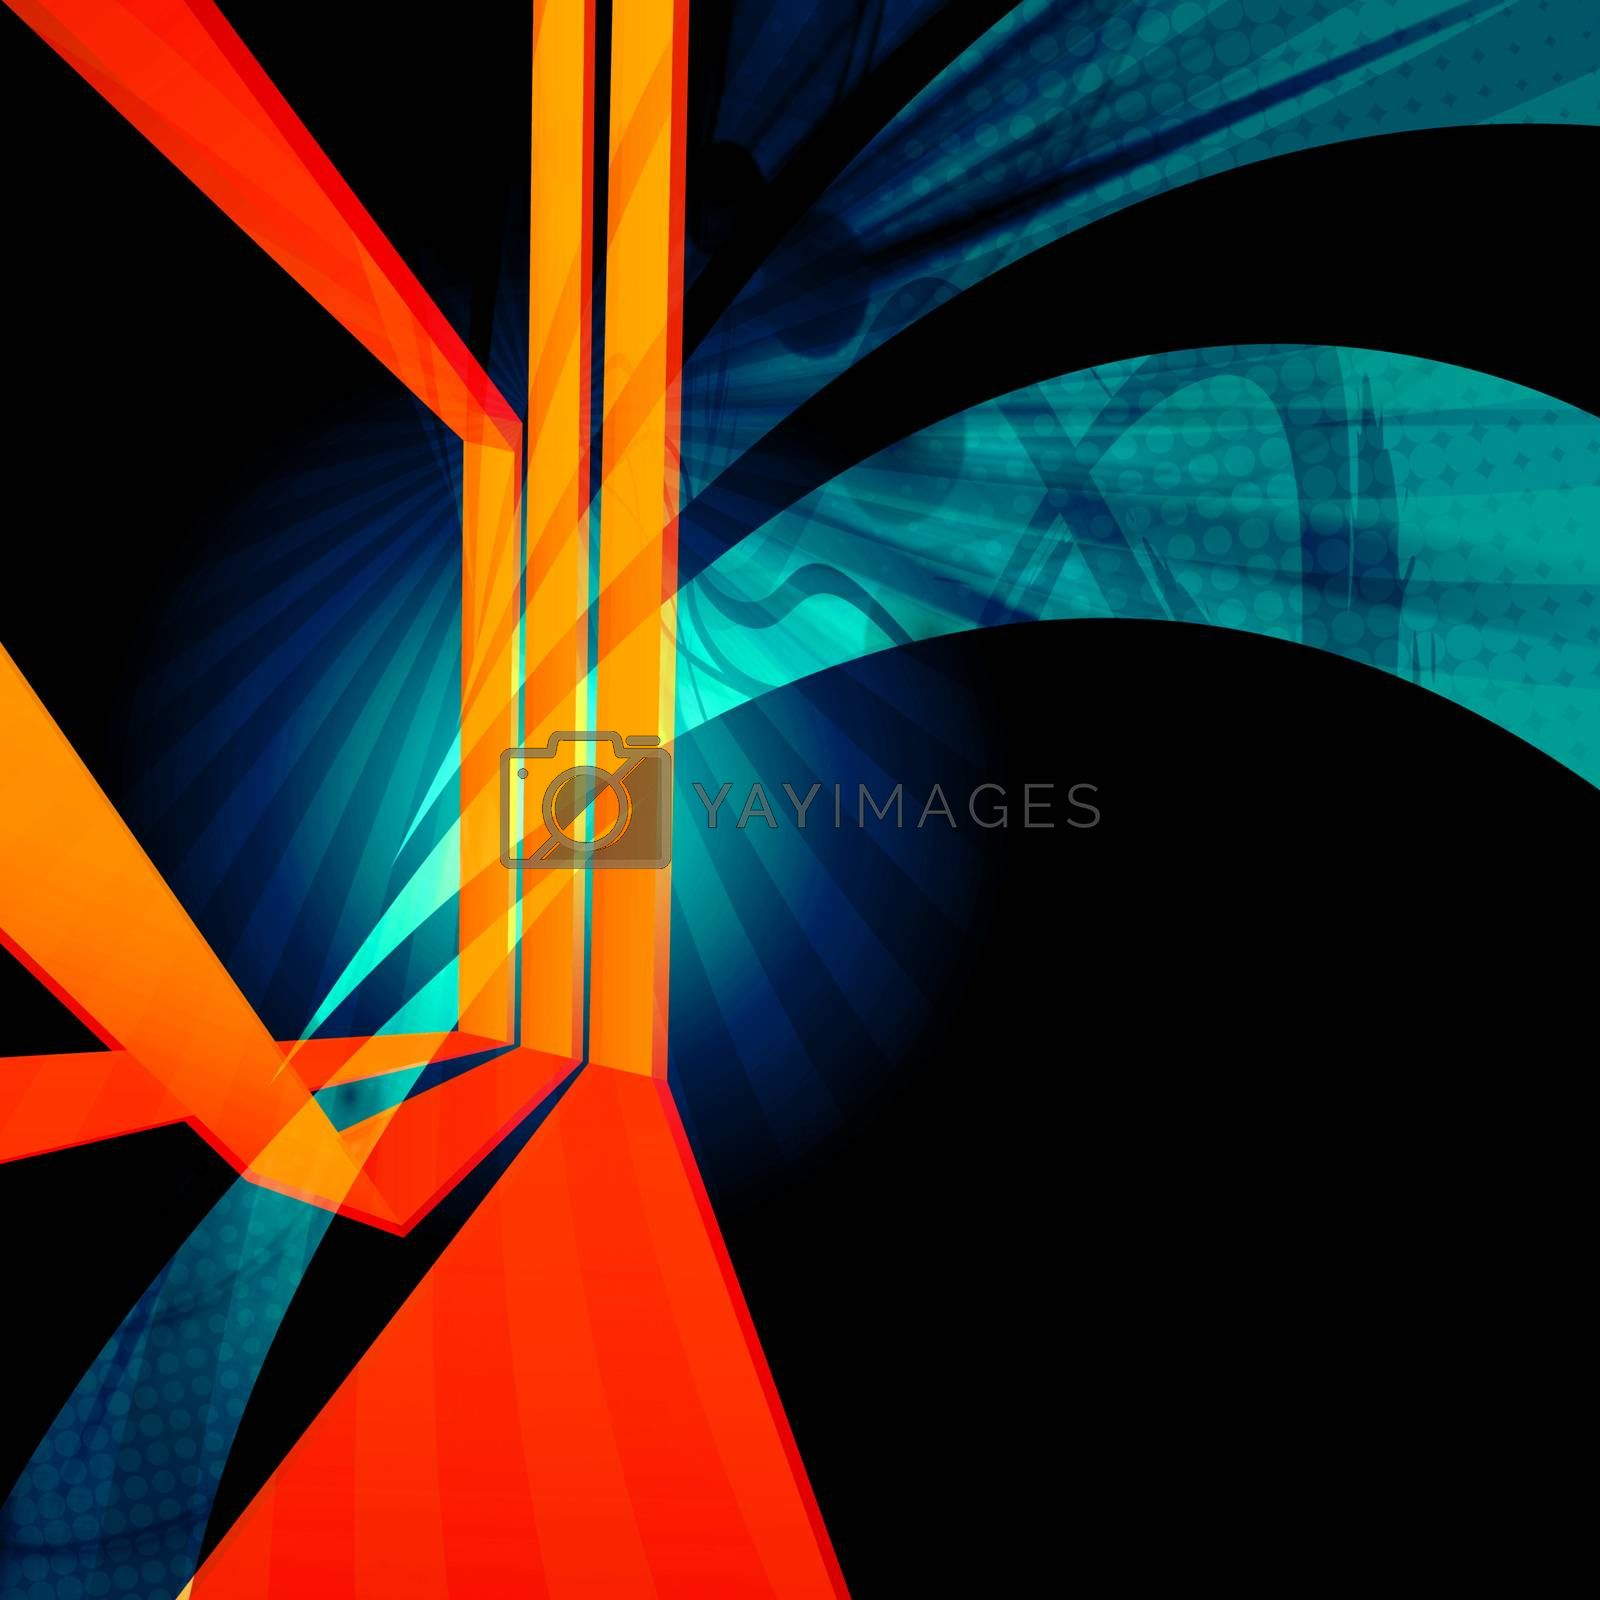 Funky abstract design with dimensional converging lines.